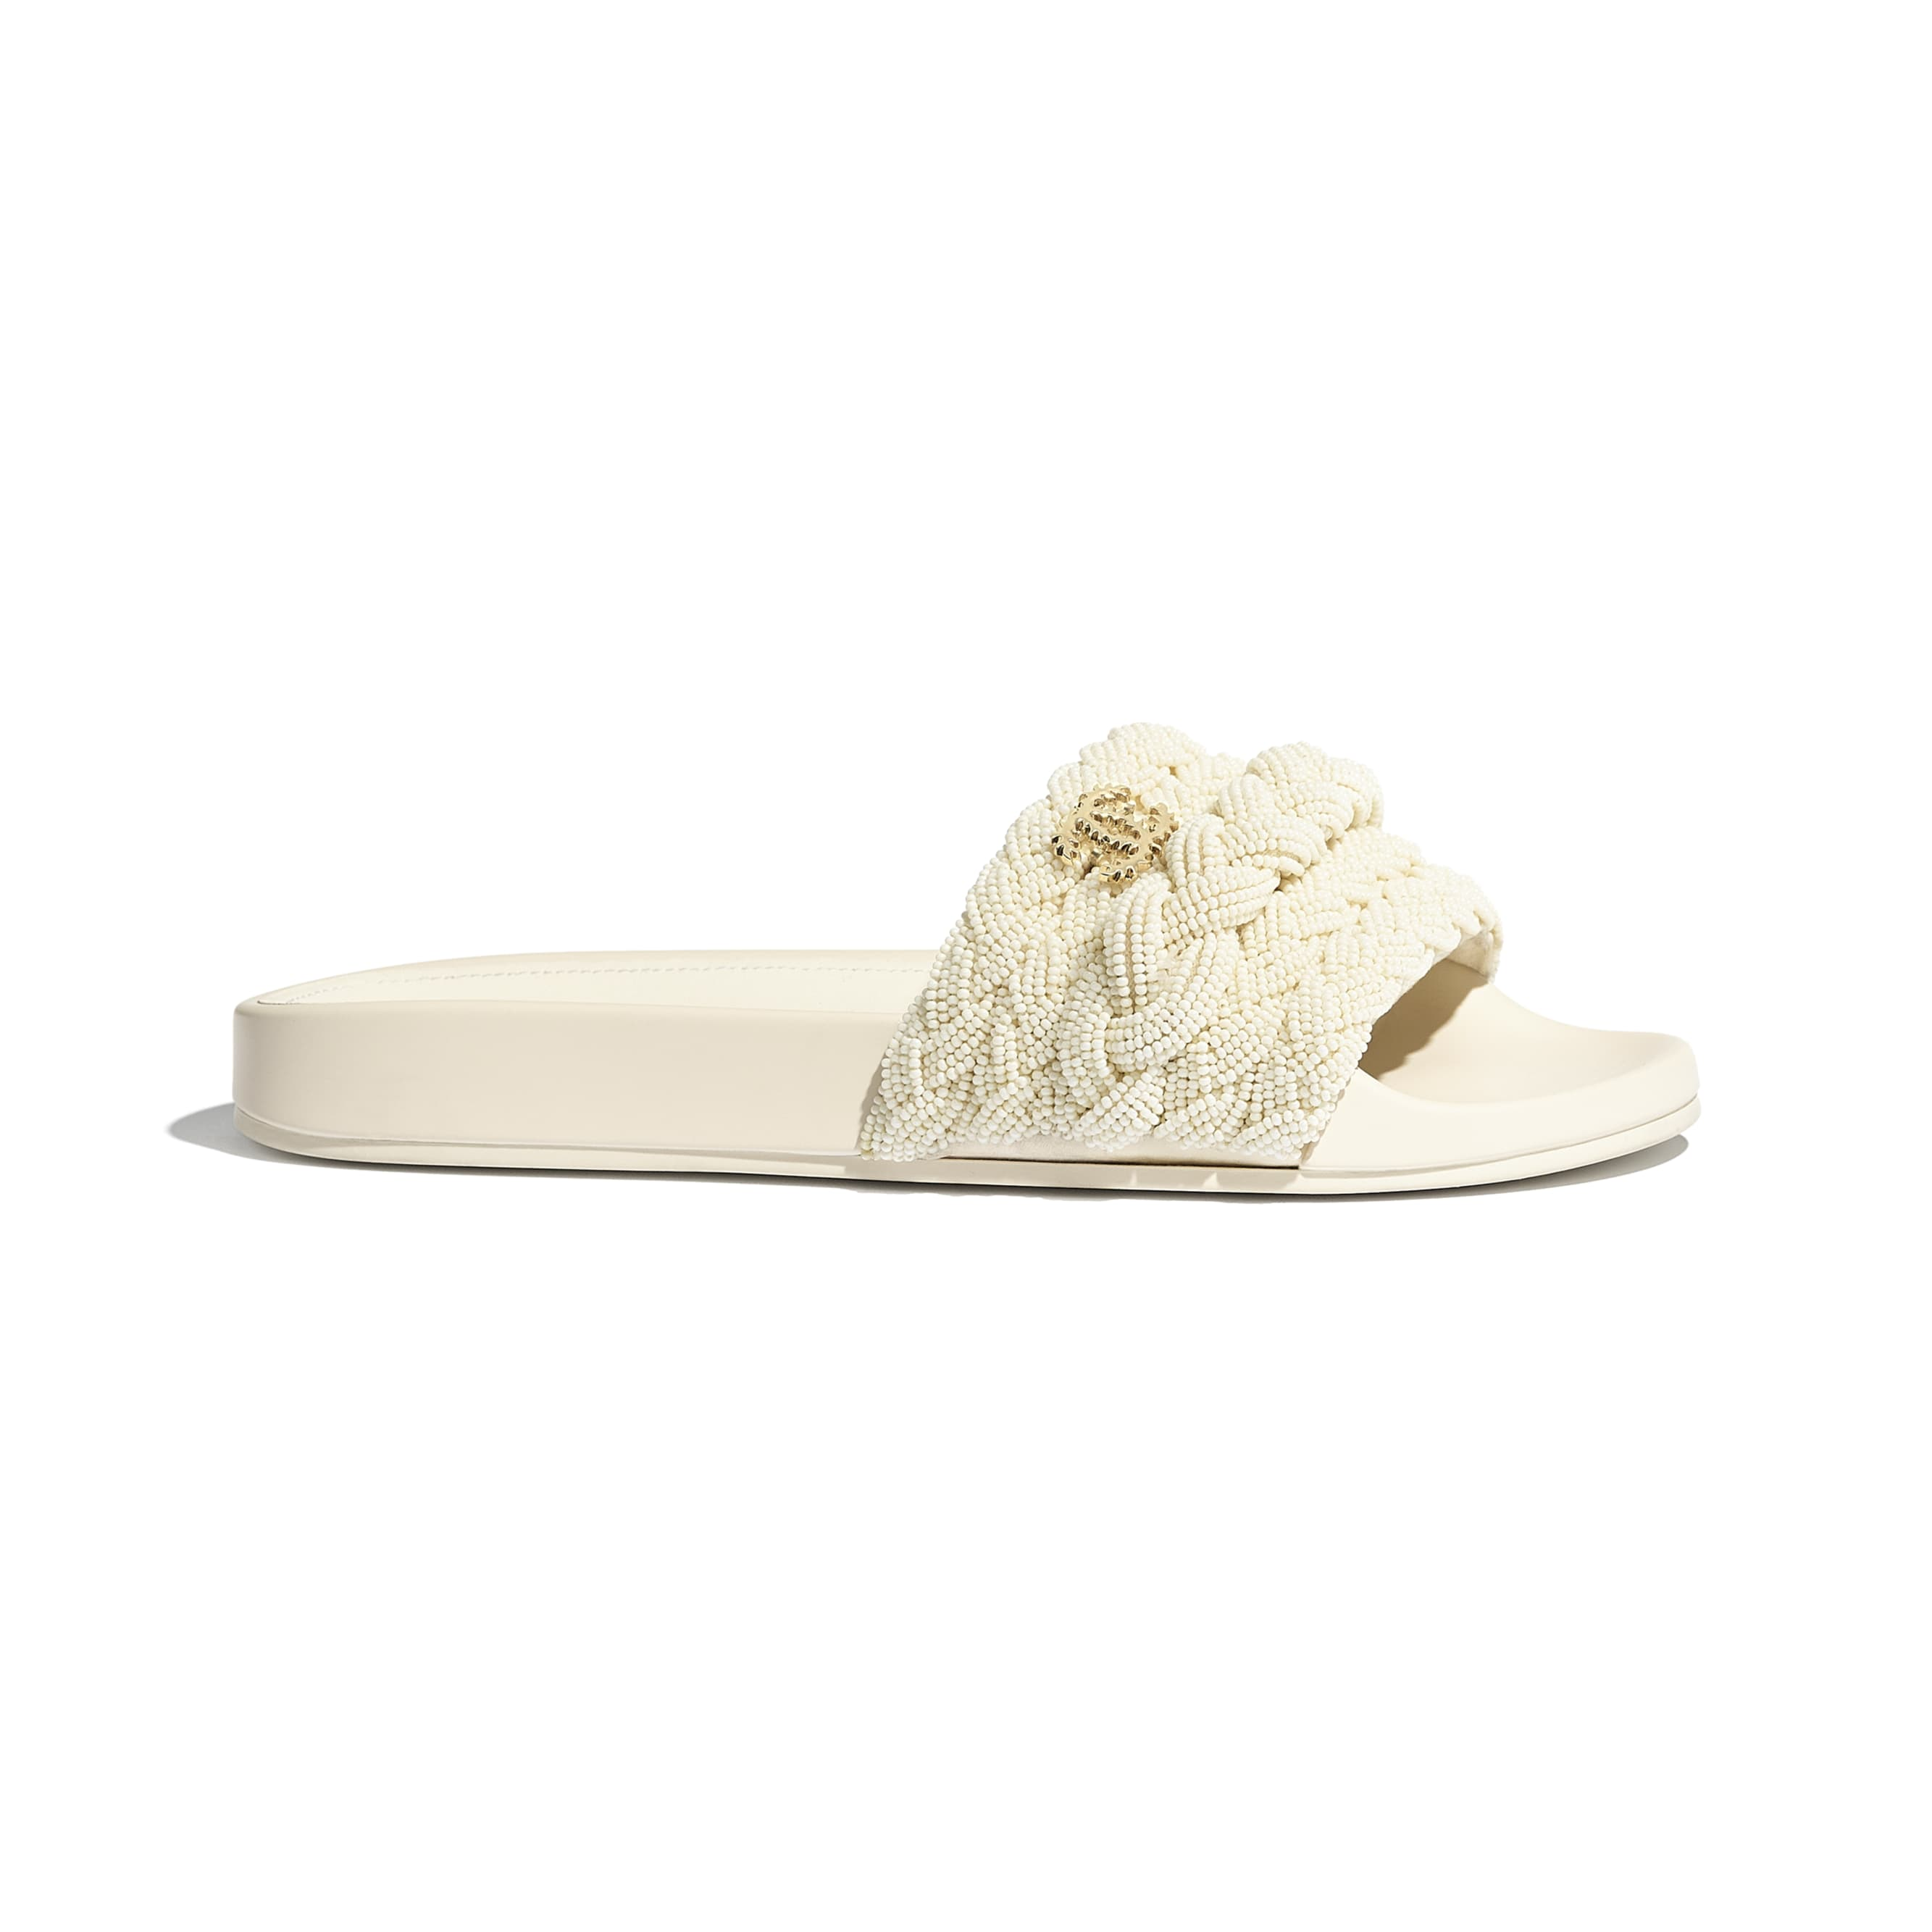 Mules - Ivory - Pearls & Lambskin - CHANEL - Default view - see standard sized version